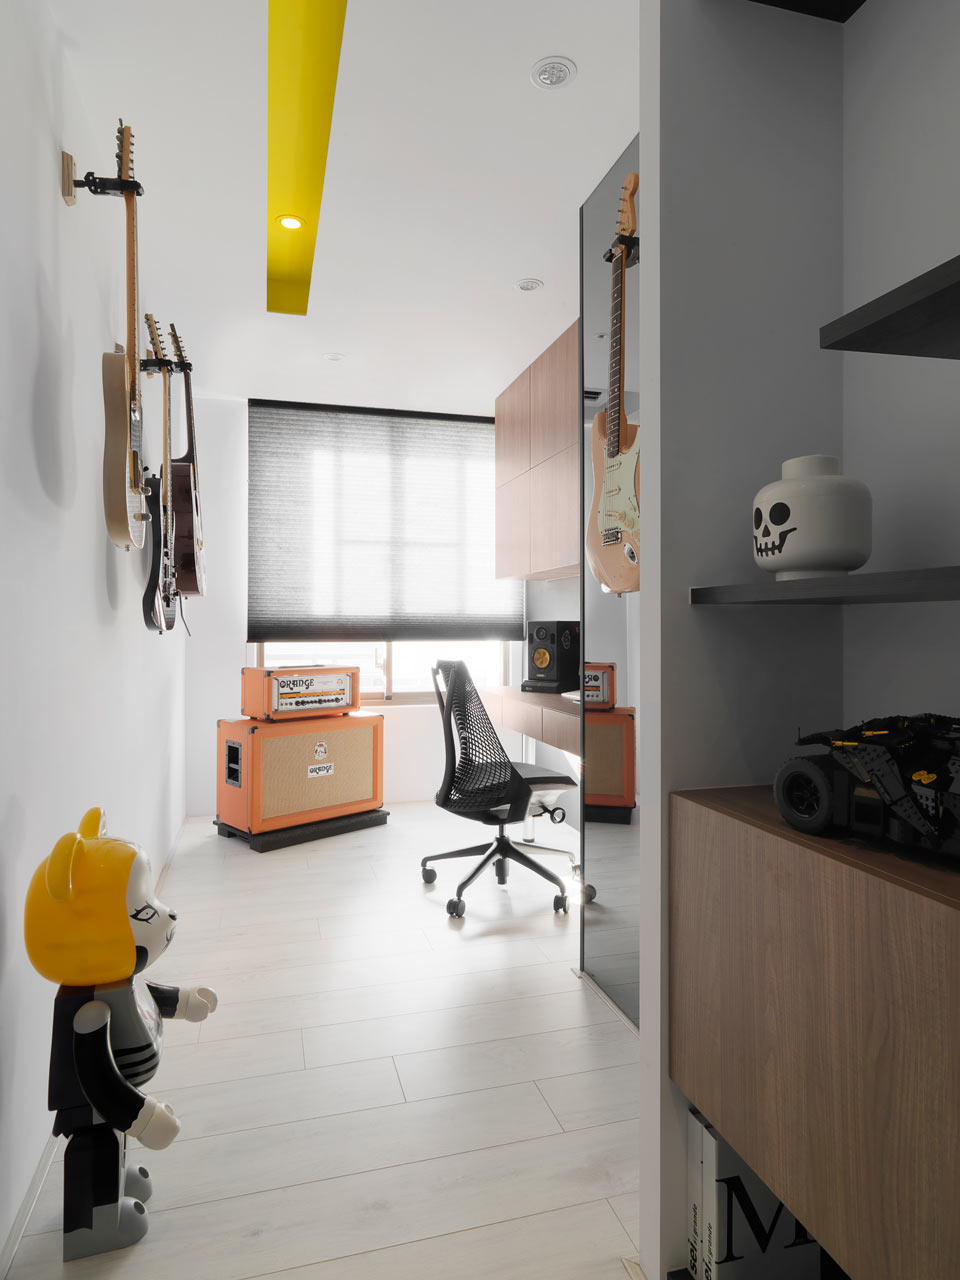 taichung h residence12 Modern Apartment with Bright Yellow Accents